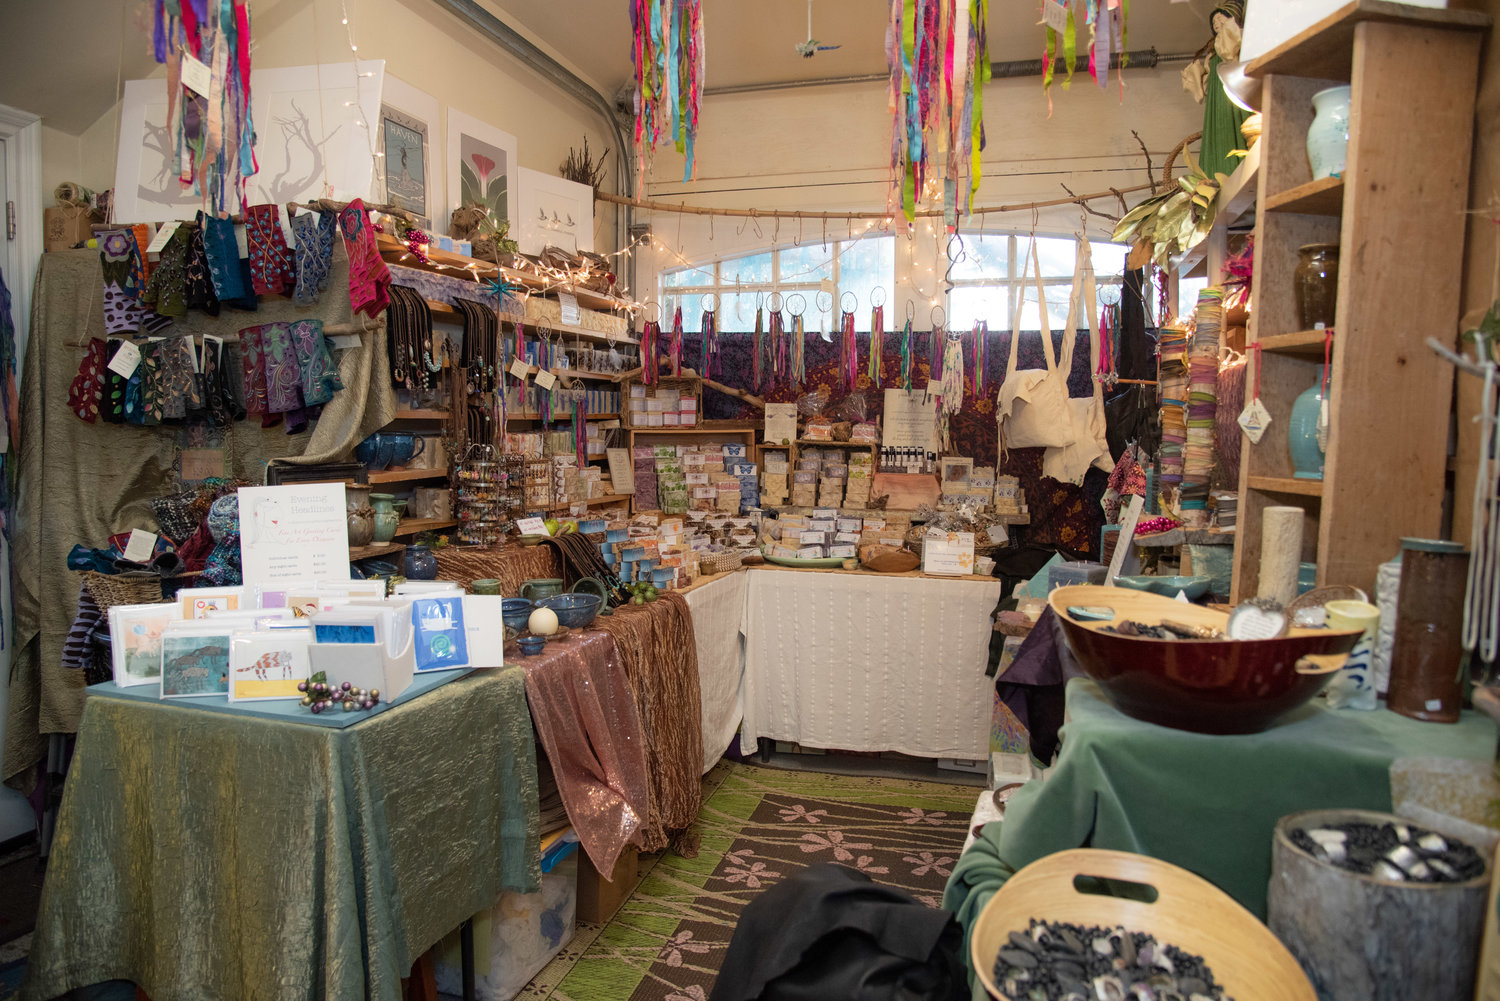 The quaint boutique offers winter-wear, greeting cards, handmade soaps and candles, dream catchers, bags, bracelets and positivity stones.